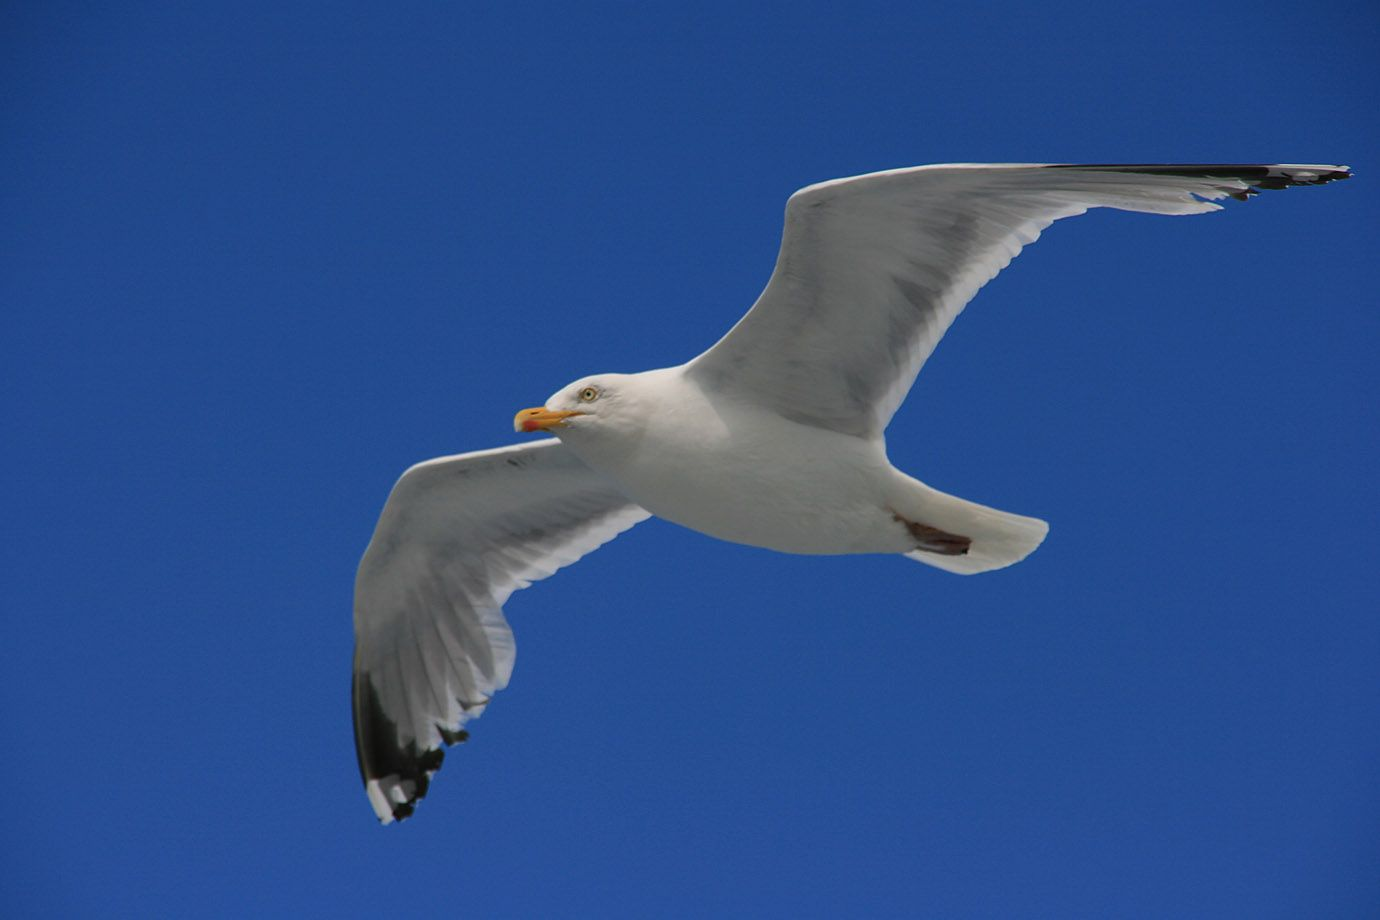 Sea-Gull in gliding flight - as a symbol for life in the air